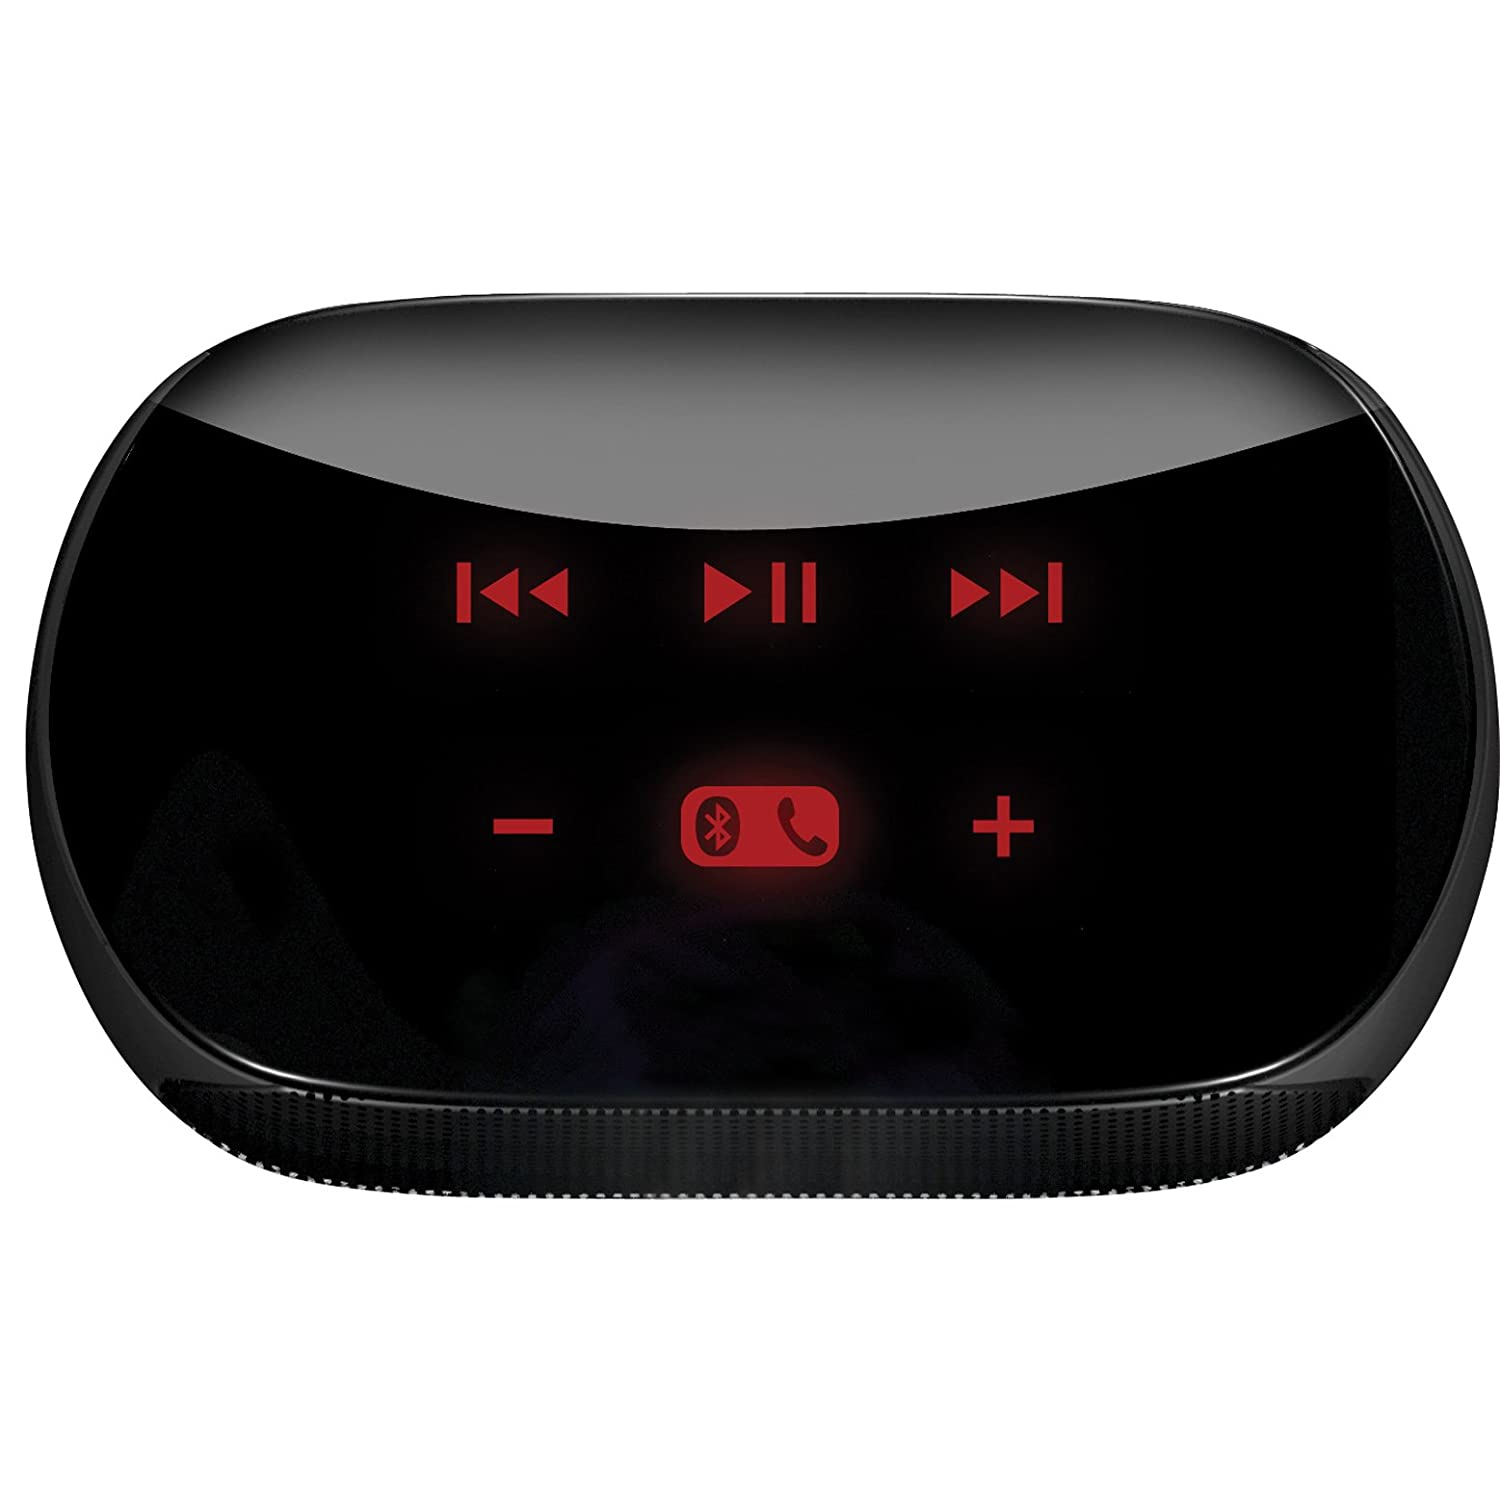 top view with red glowing buttons